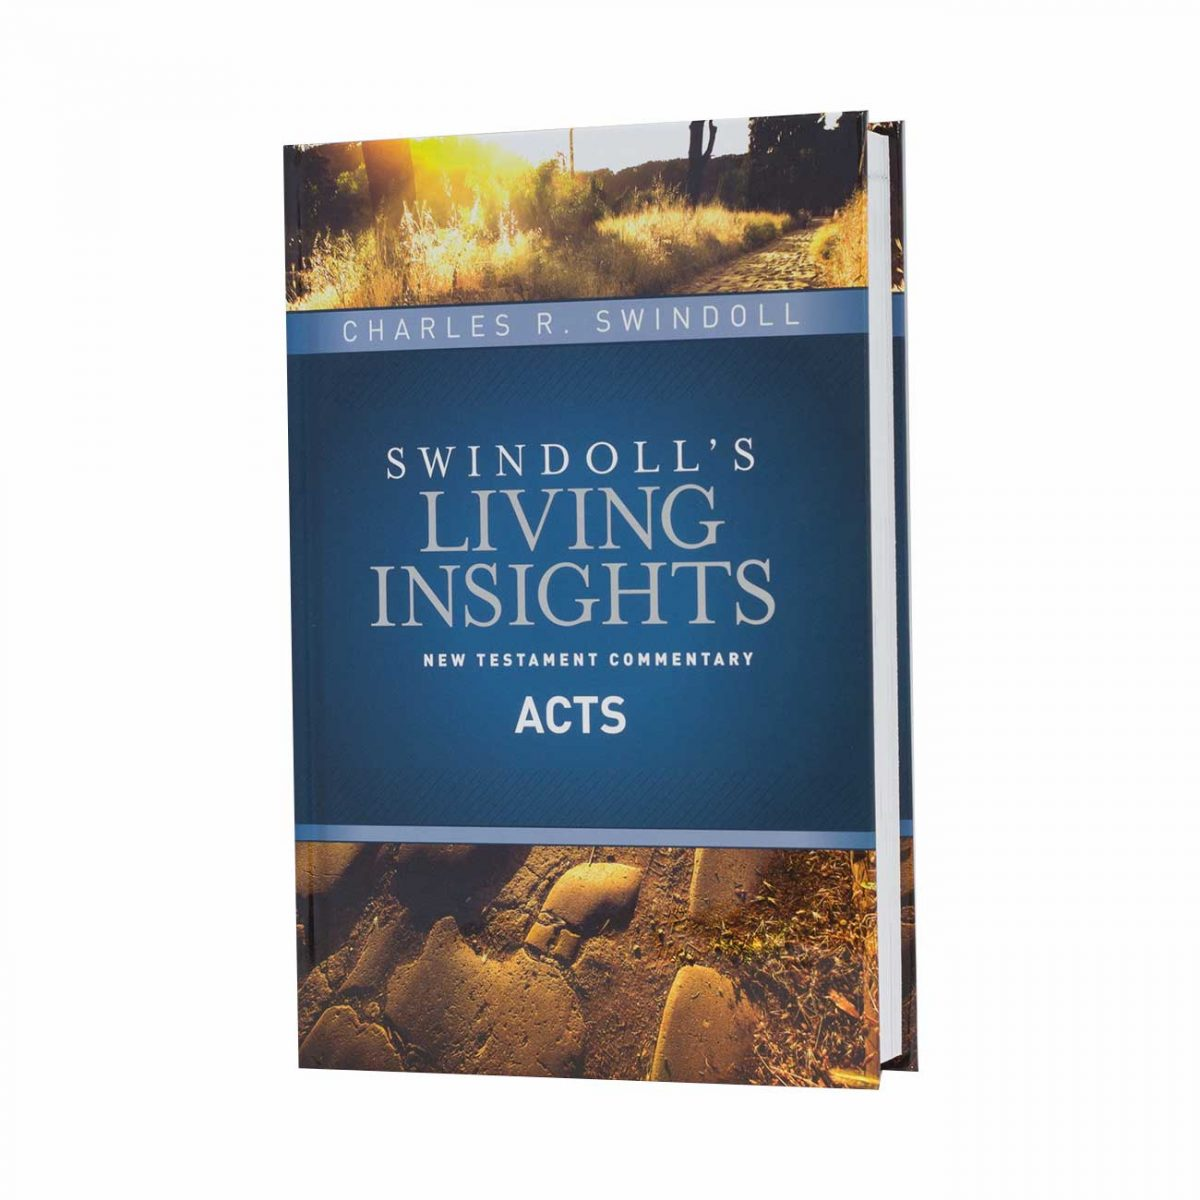 SWINDOLL'S LIVING INSIGHTS NEW TESTAMENT COMMENTARY: ACTS, hardback book